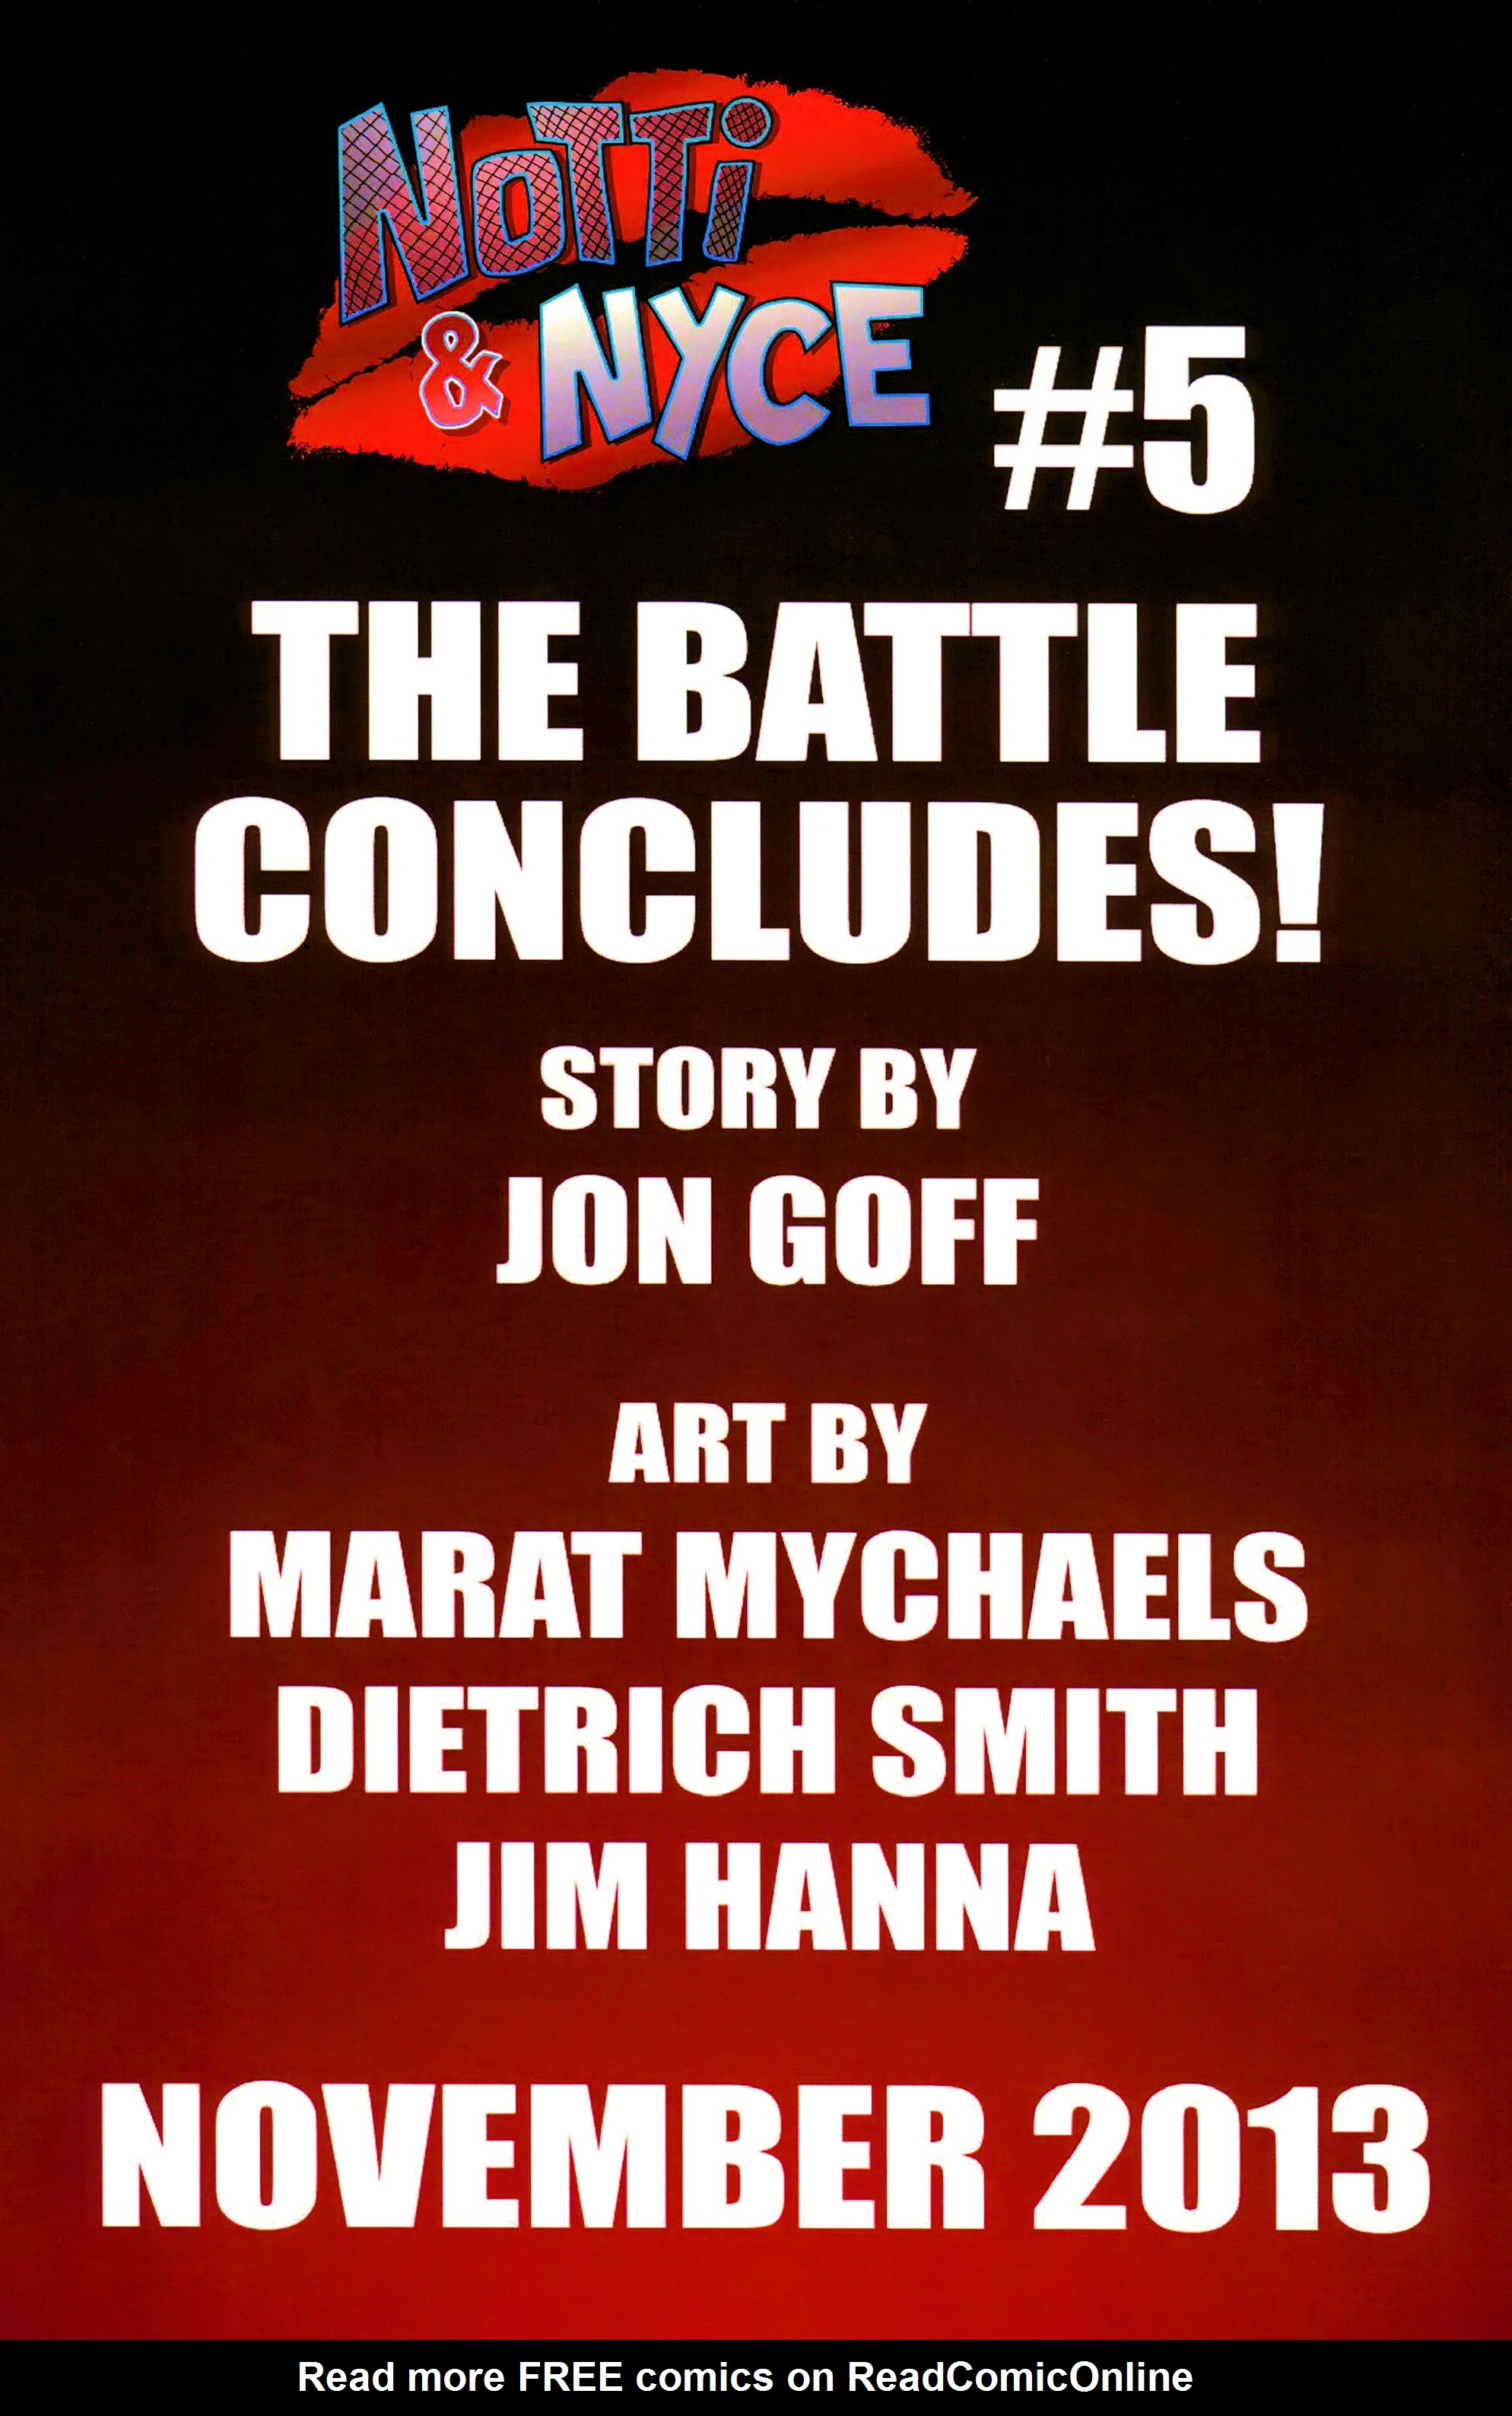 Read online Notti & Nyce comic -  Issue #4 - 18